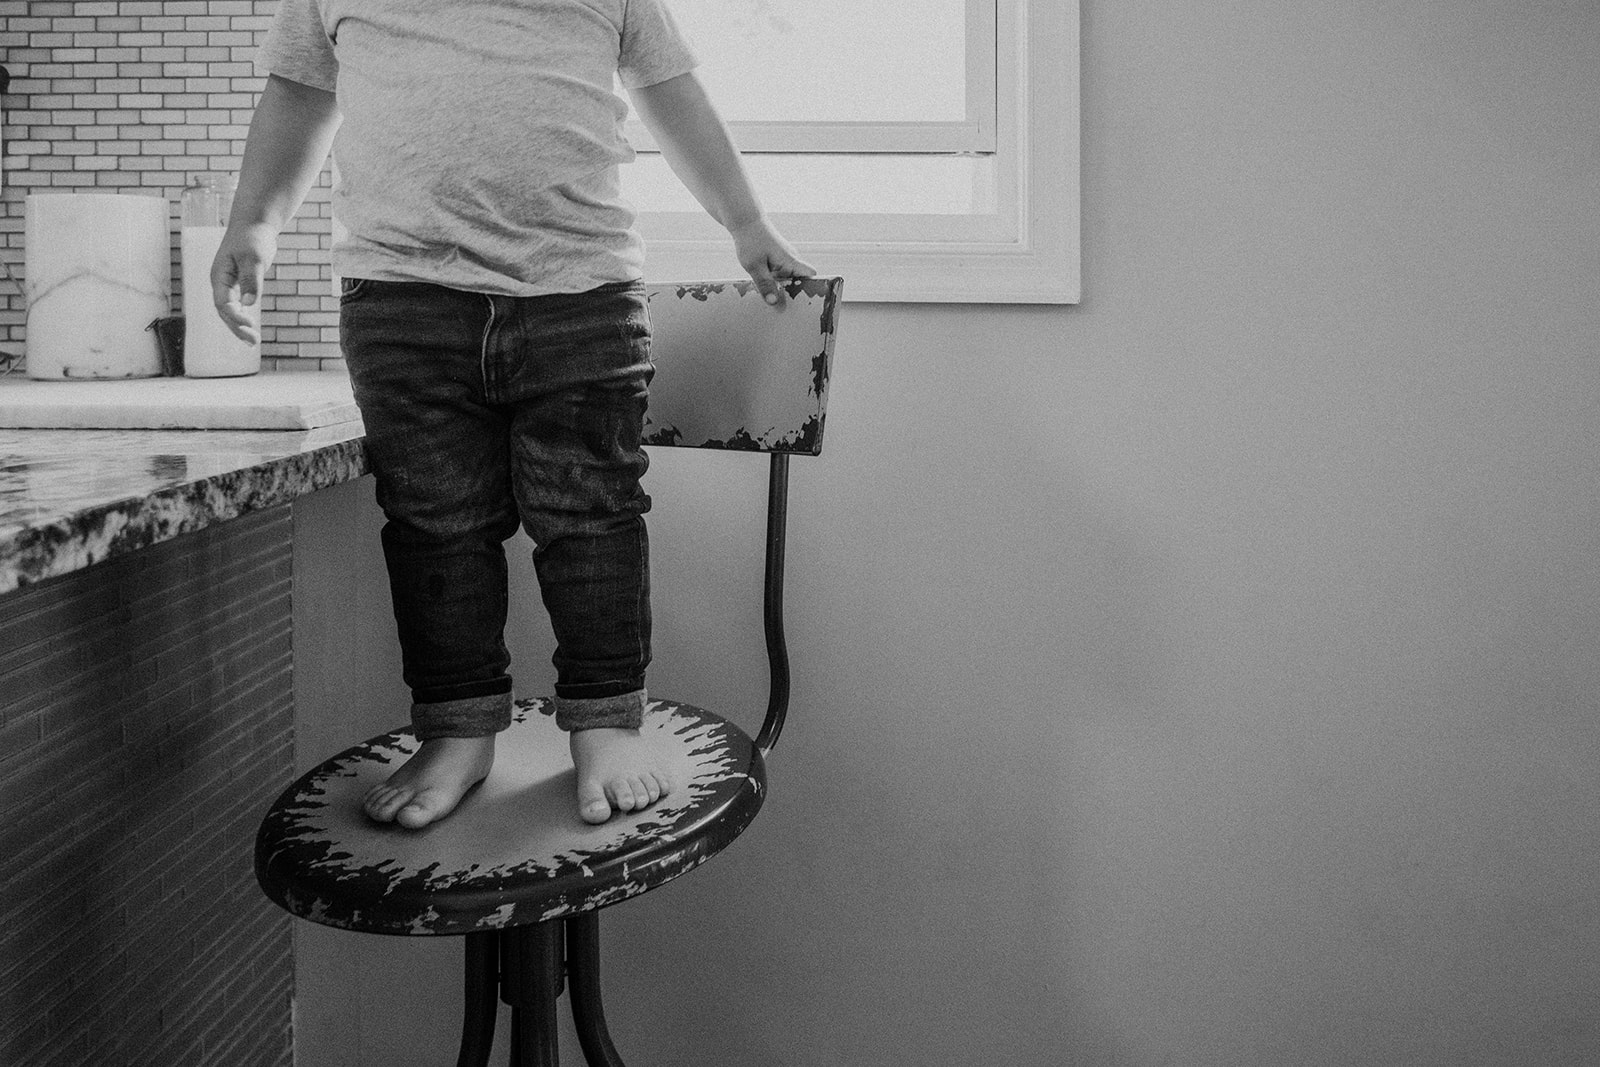 A little boy stands on a chair by the kitchen island in his home during an in-home family photography session.